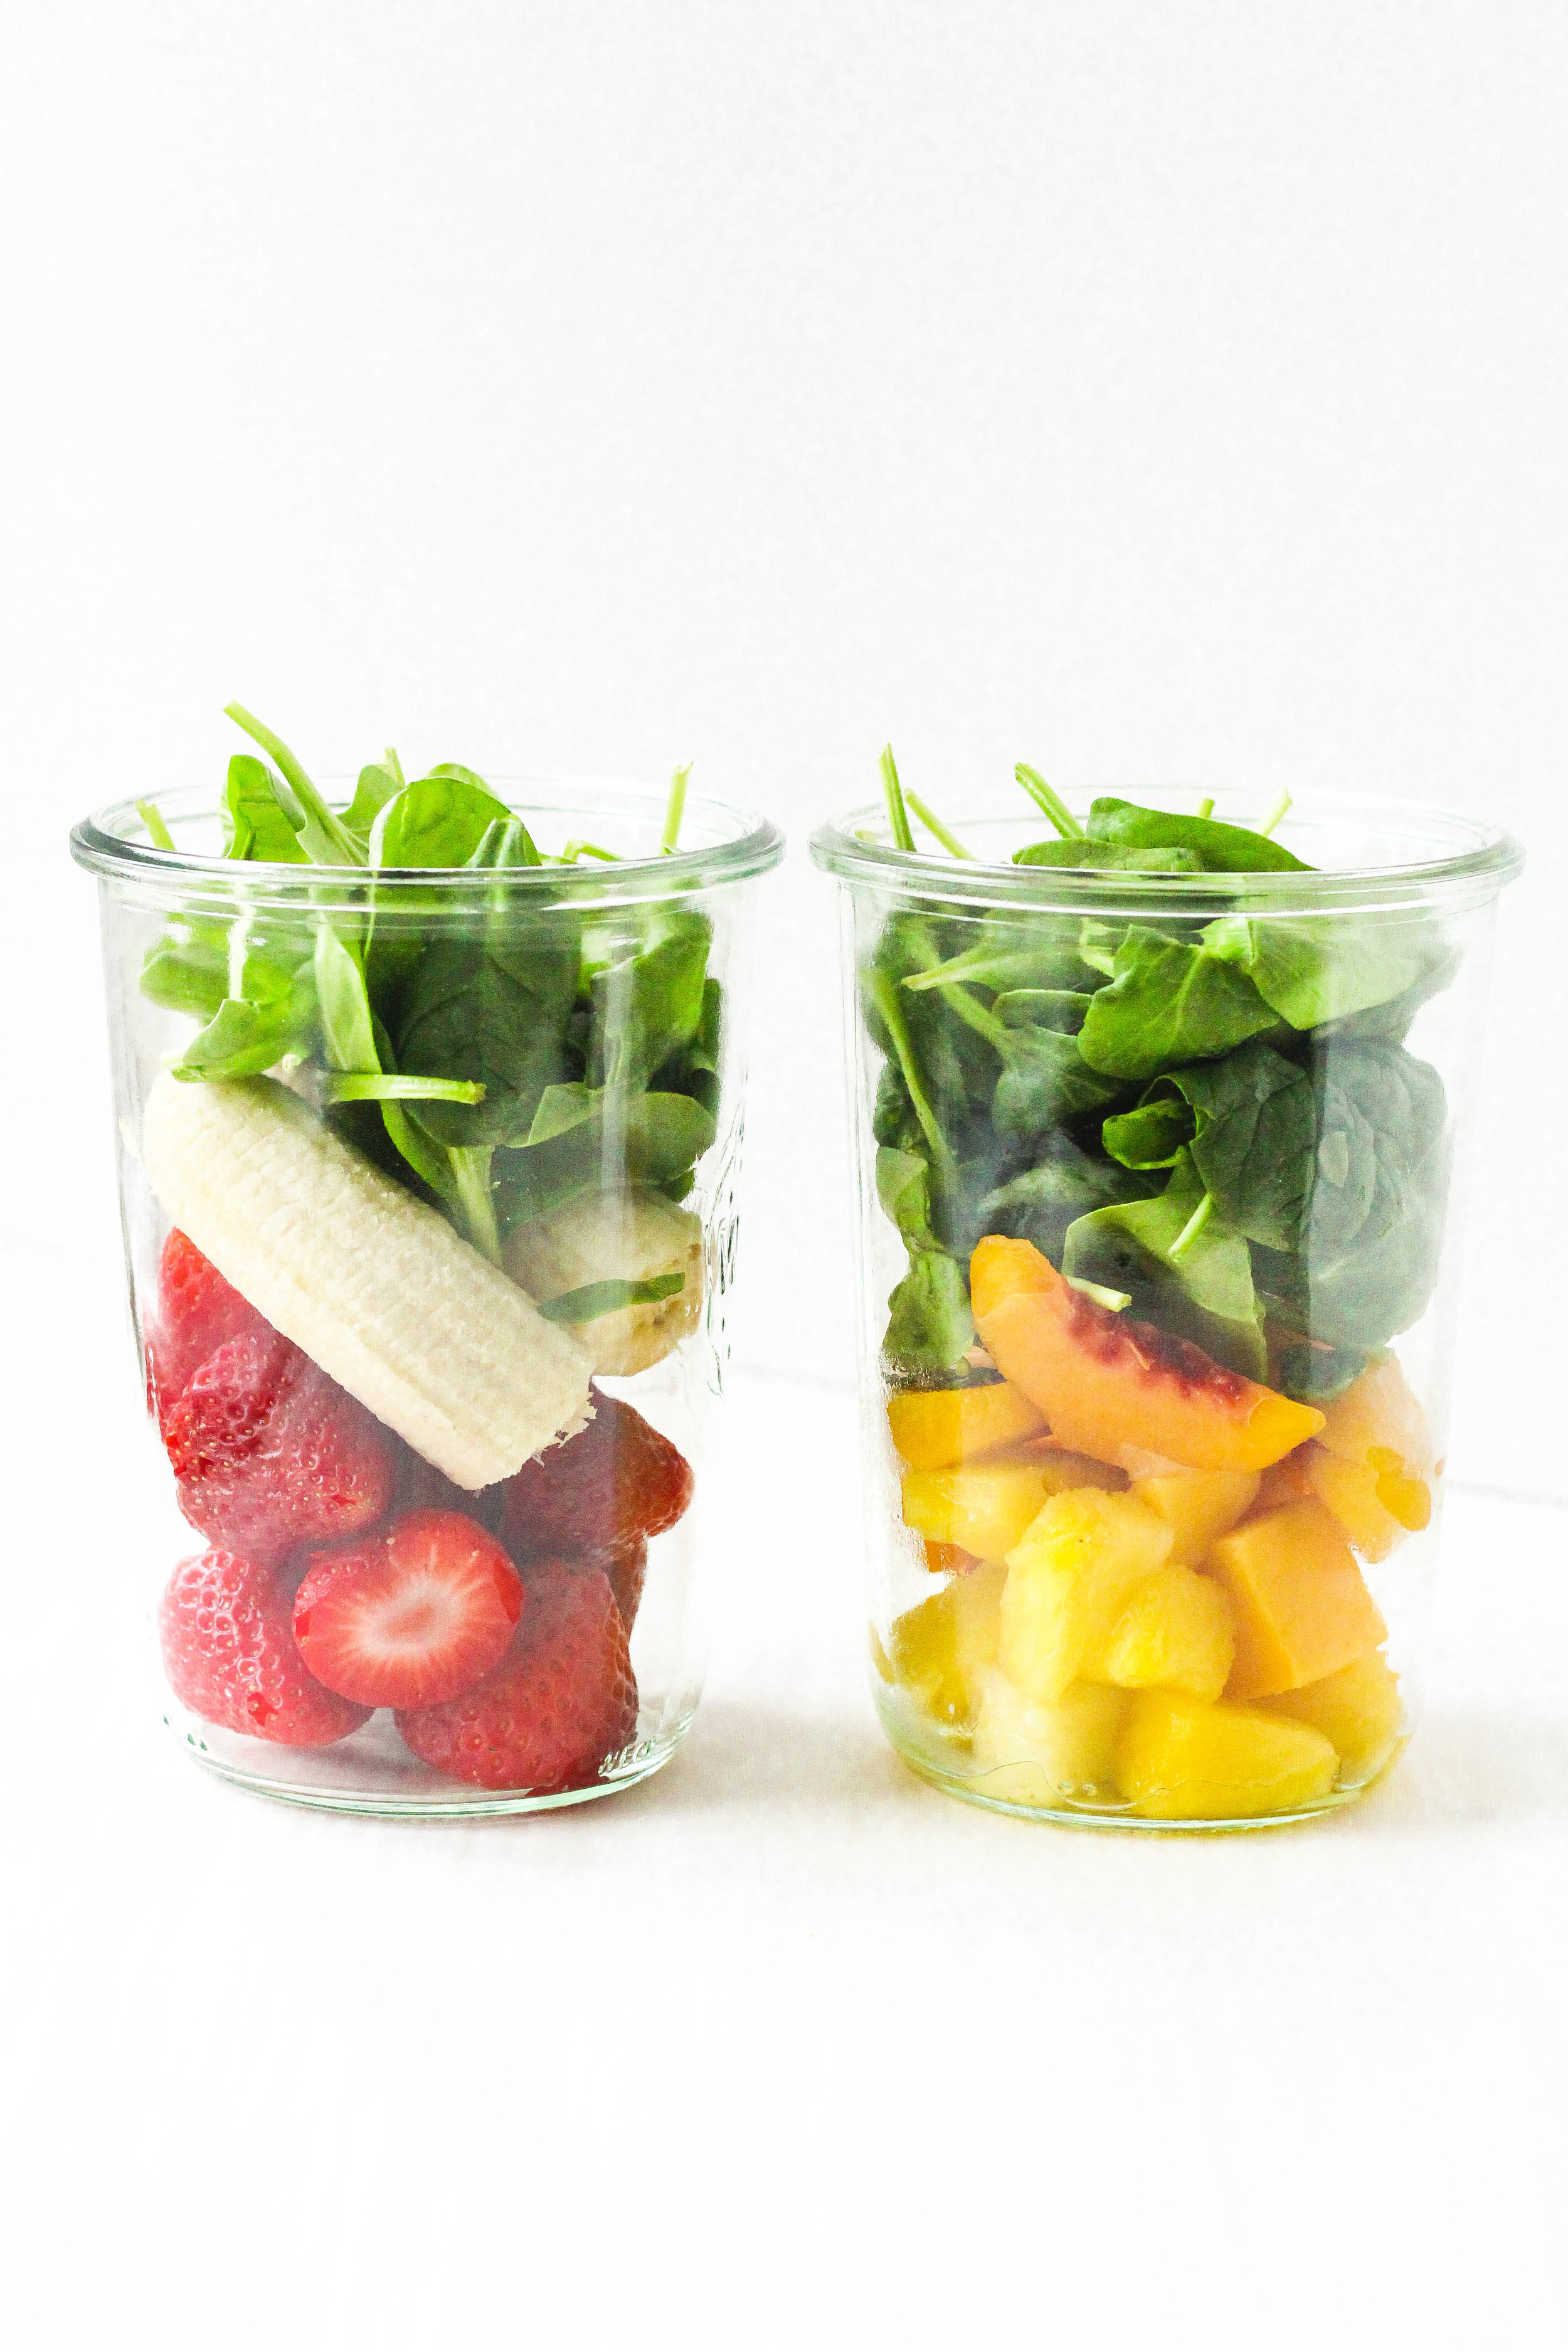 Pre-made Smoothie Jars